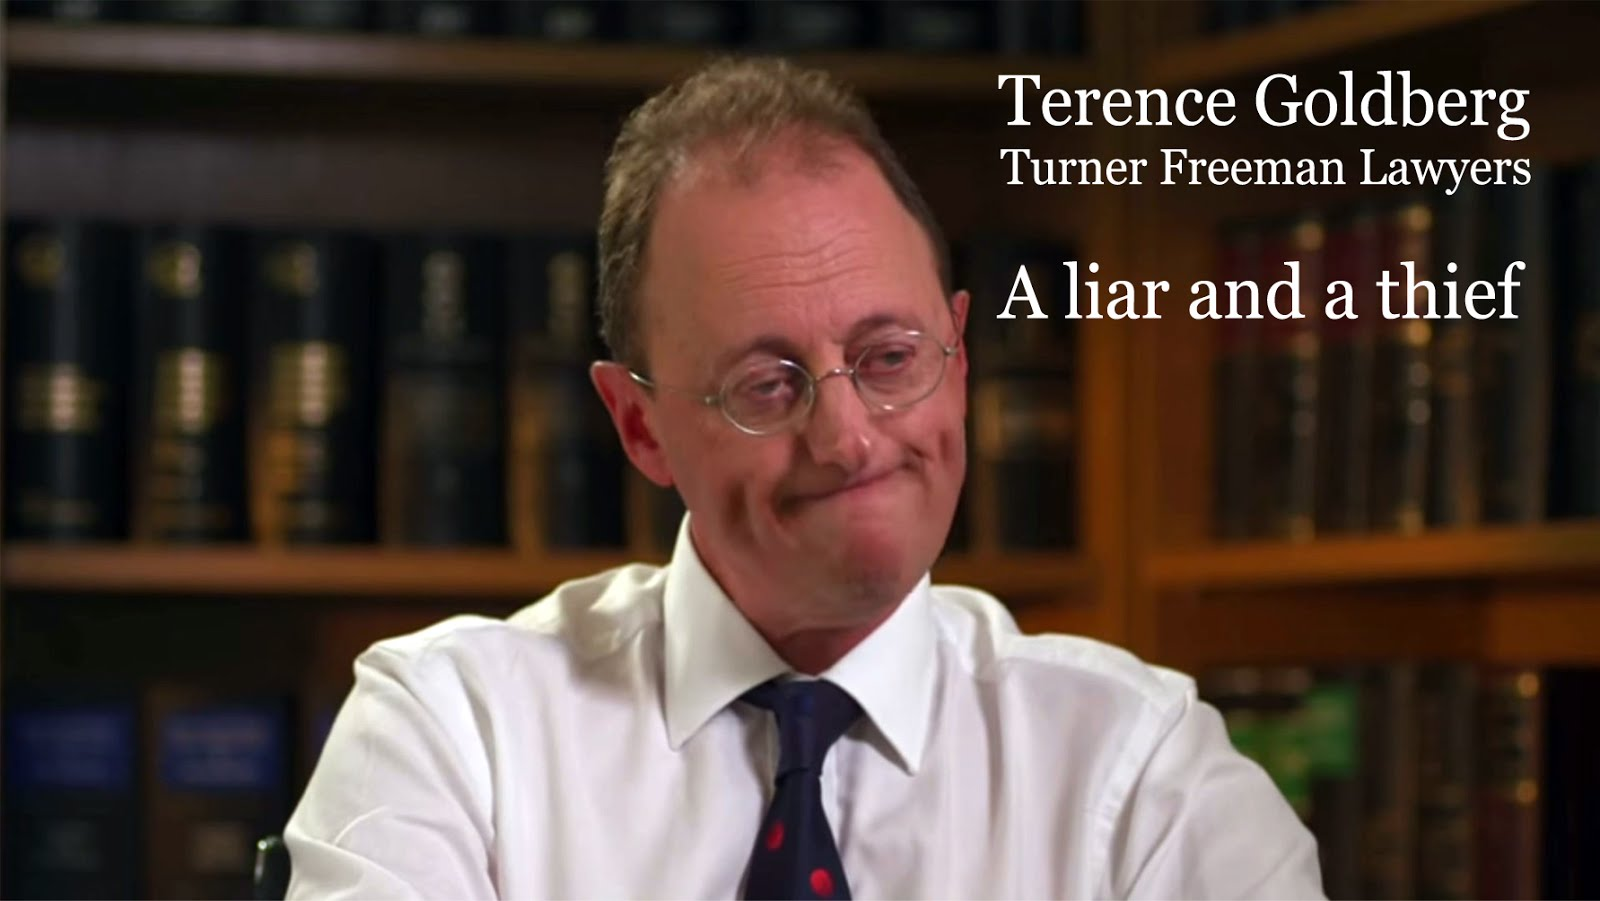 Terry Goldberg, Turner Freeman Lawyers